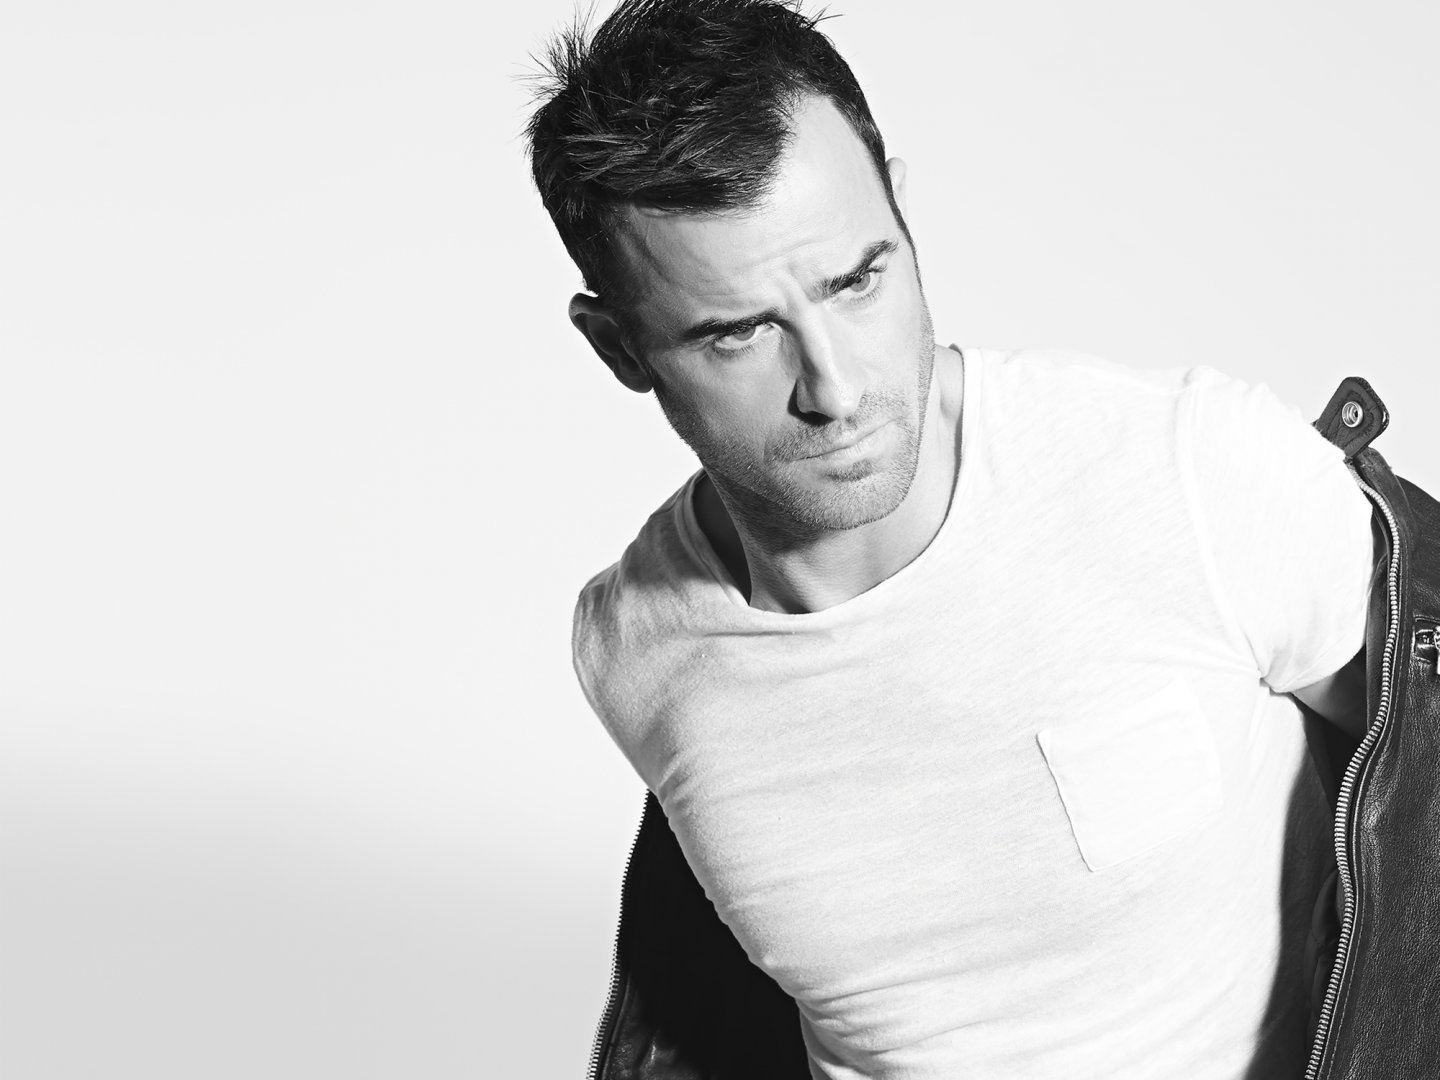 1440x1080 - Justin Theroux Wallpapers 4